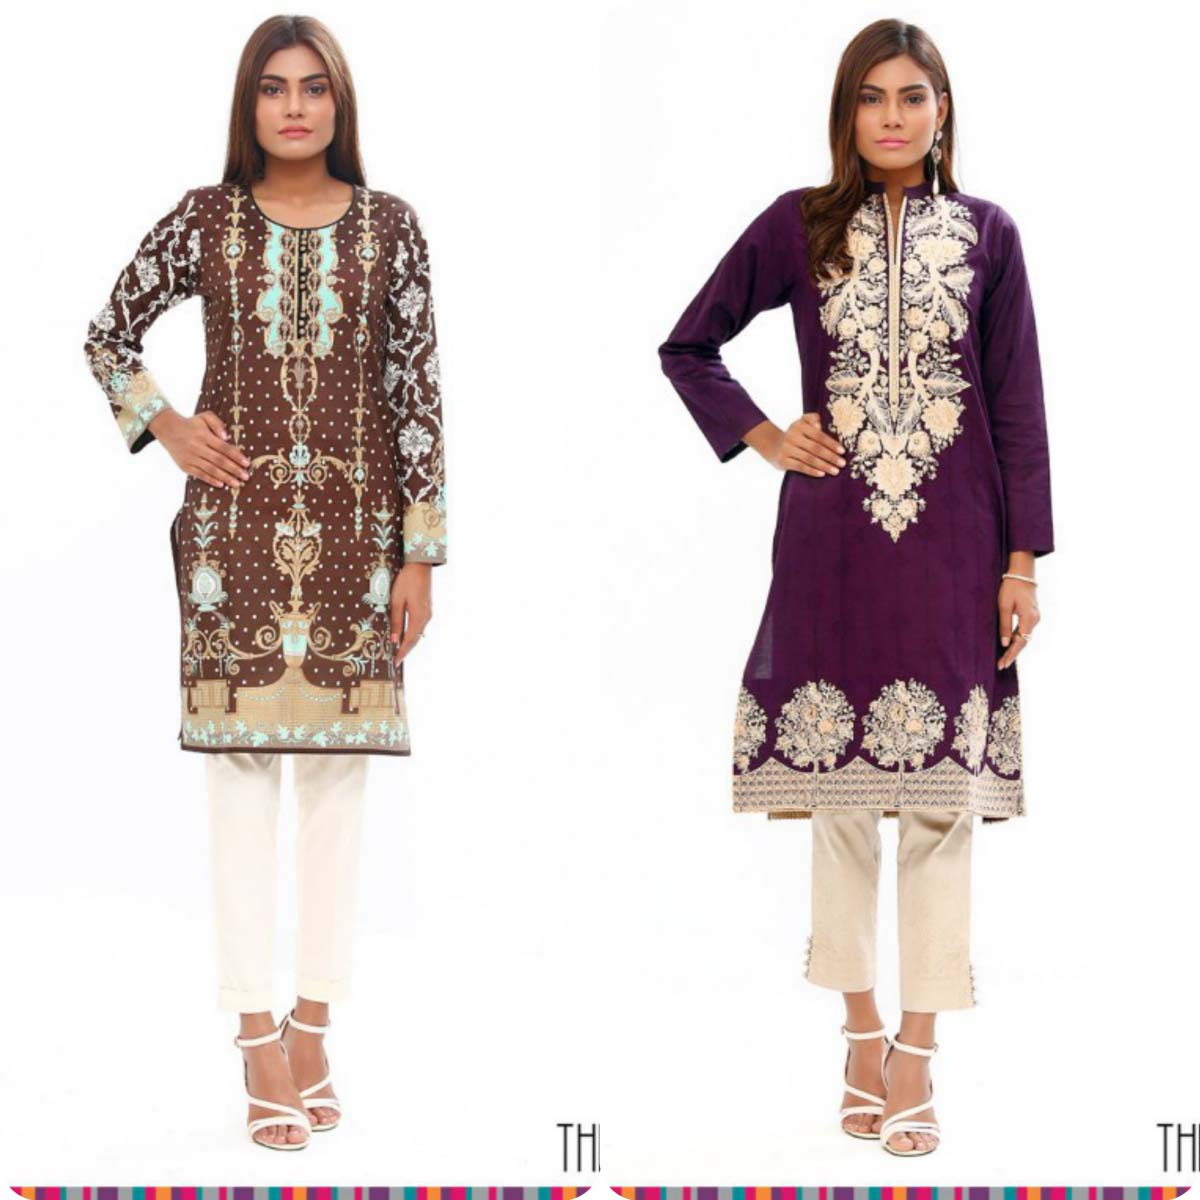 Stylish Embroidered Eid KurtisTunics for Girls By THREDZ 2016-2016 Complete Look-Book (8)